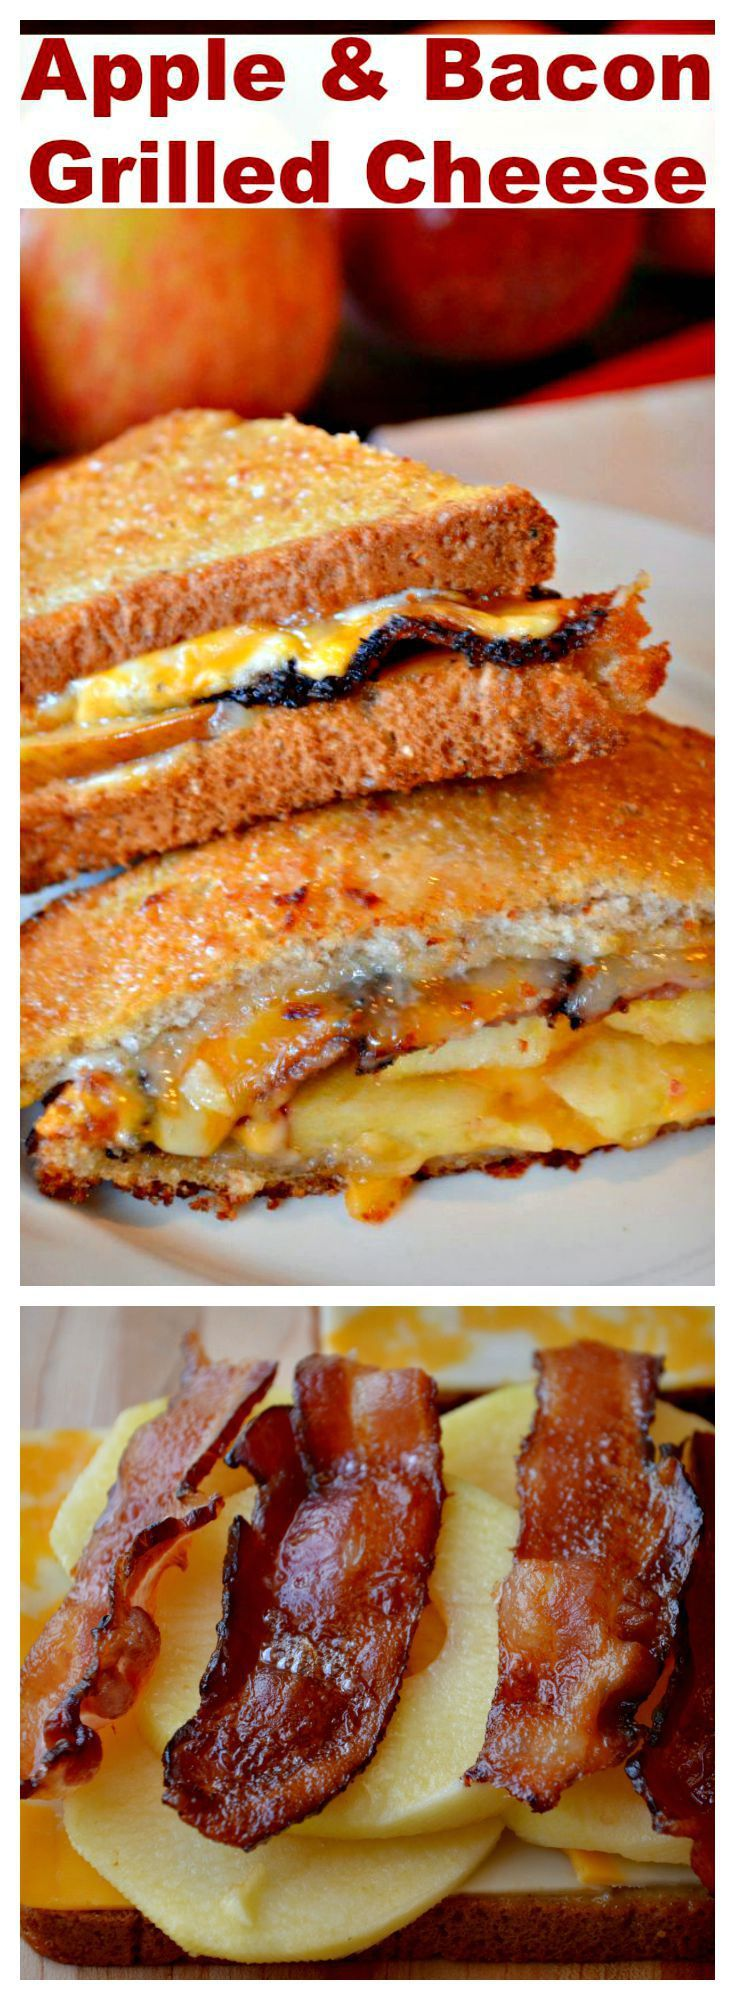 Apple & Bacon Grilled Cheese - Are you ready for Fall and Apples?  I love this Apple & Bacon Grilled Cheese.  It is one of the best sandwiches I have ever had.  The sauce is perfect.